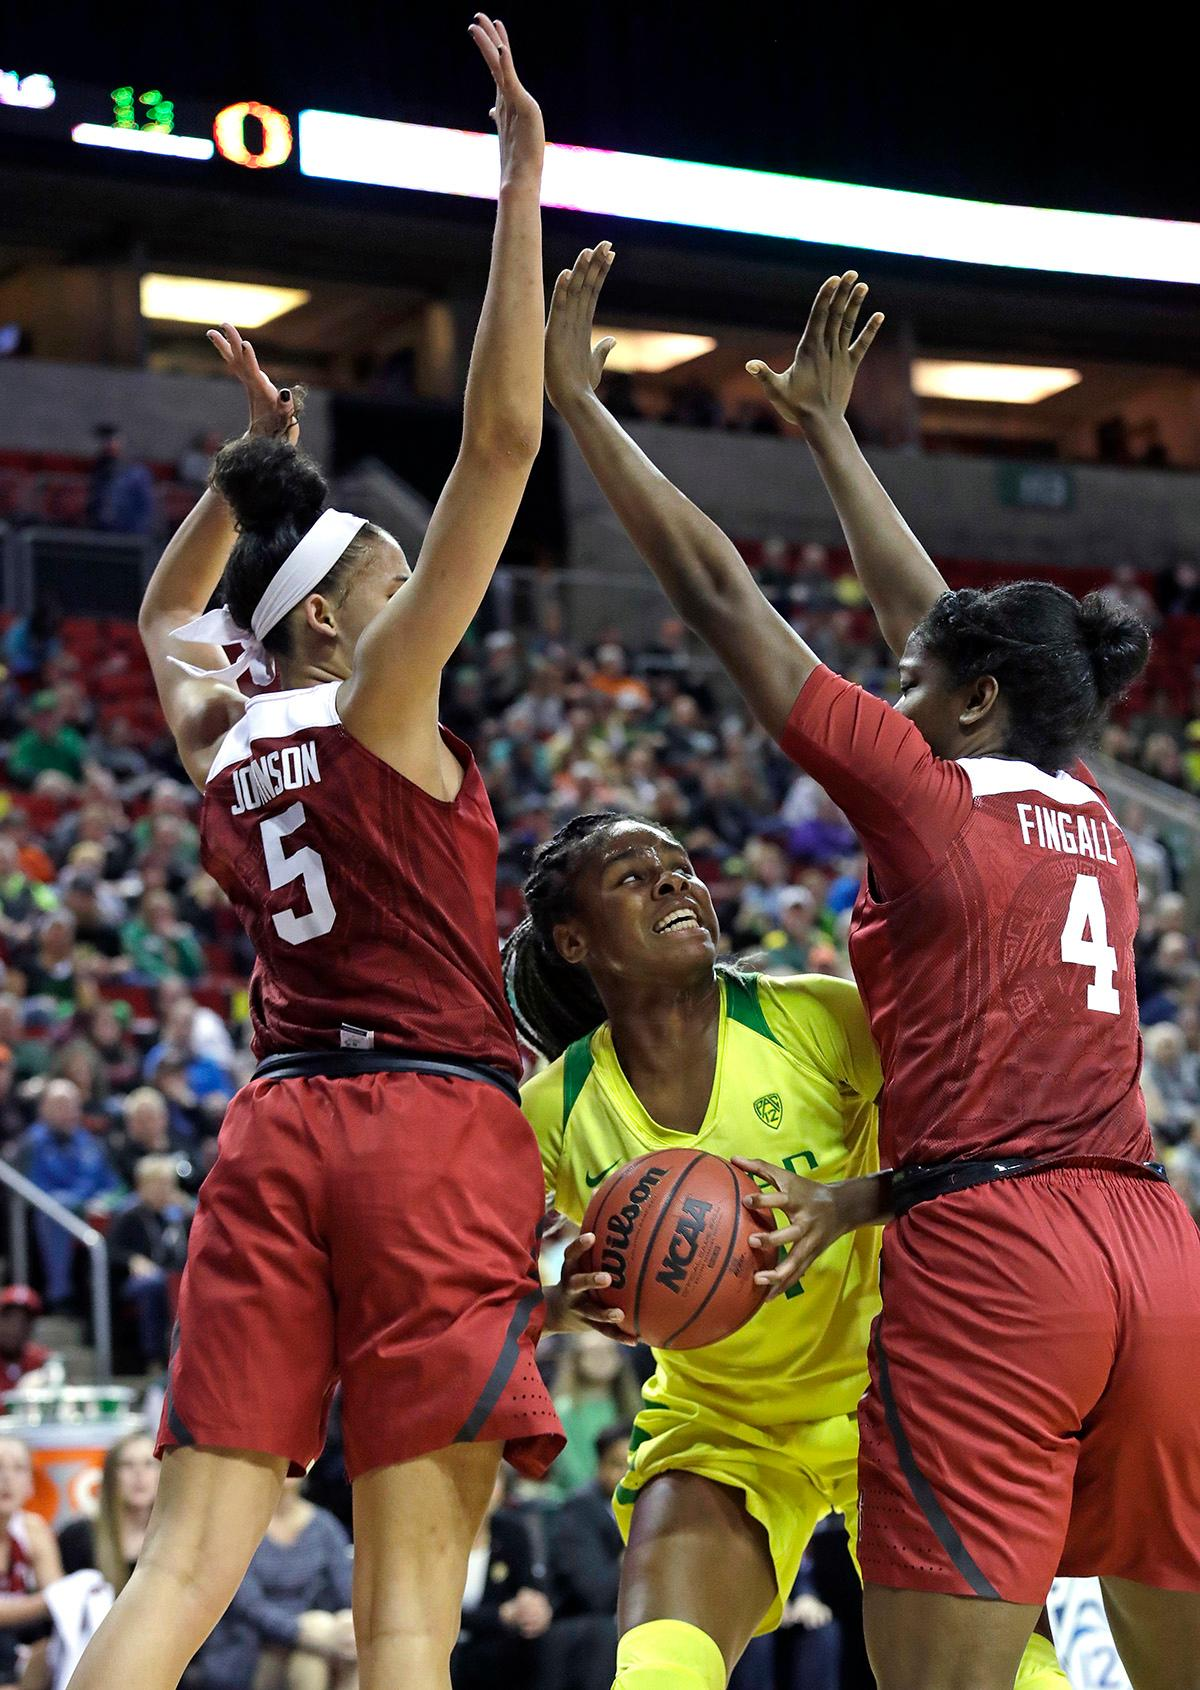 Oregon's Ruthy Hebard, center, looks for room to move between Stanford's Kaylee Johnson (5) and Nadia Fingall (4) during the first half of an NCAA college basketball game in the finals of the Pac-12 Conference women's tournament, Sunday, March 4, 2018, in Seattle. (AP Photo/Elaine Thompson)